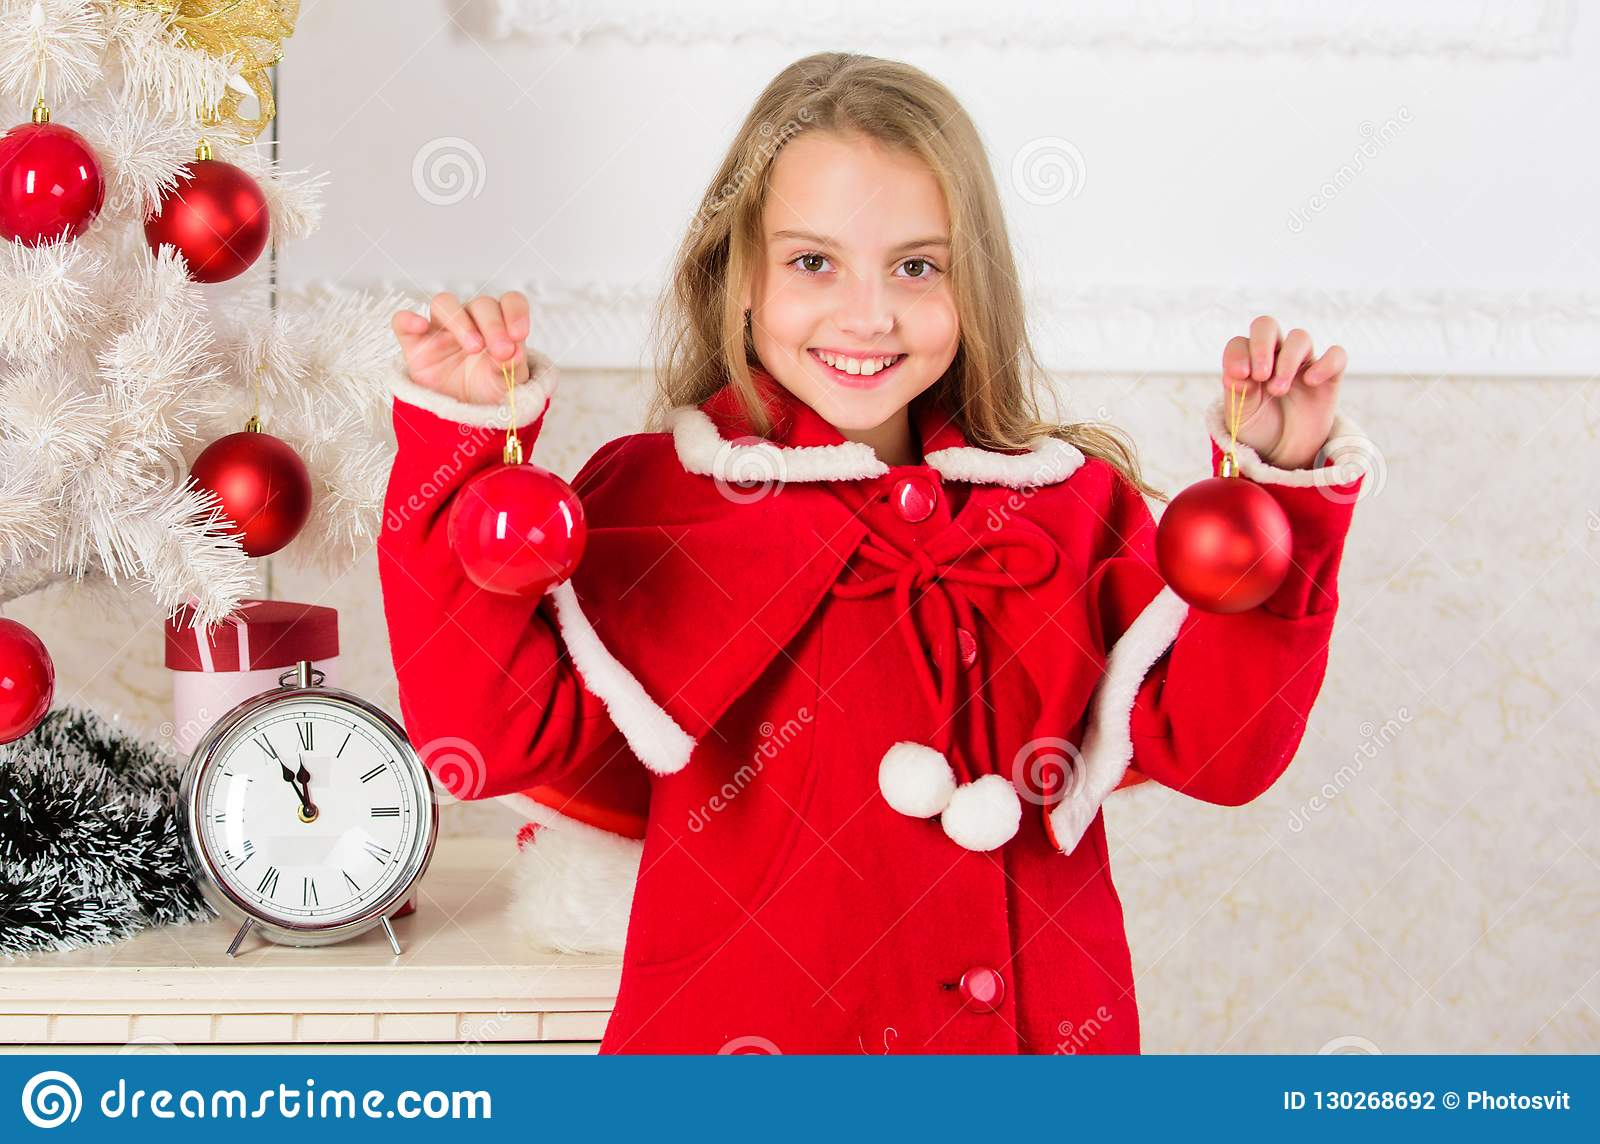 Kids can brighten up christmas tree by creating their own ornaments. Top christmas decorating ideas for kids room. Child